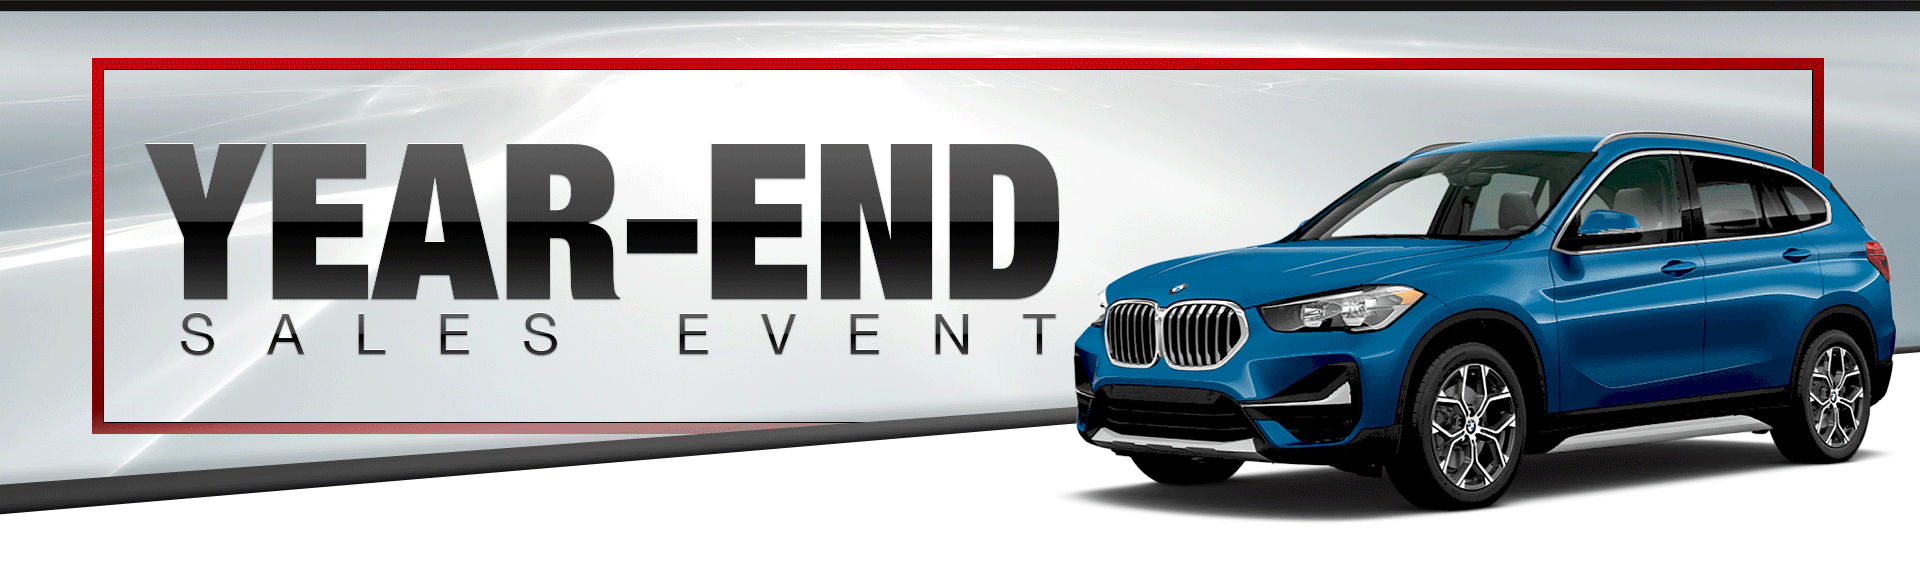 Shop Our BMW Year-End Sales Event